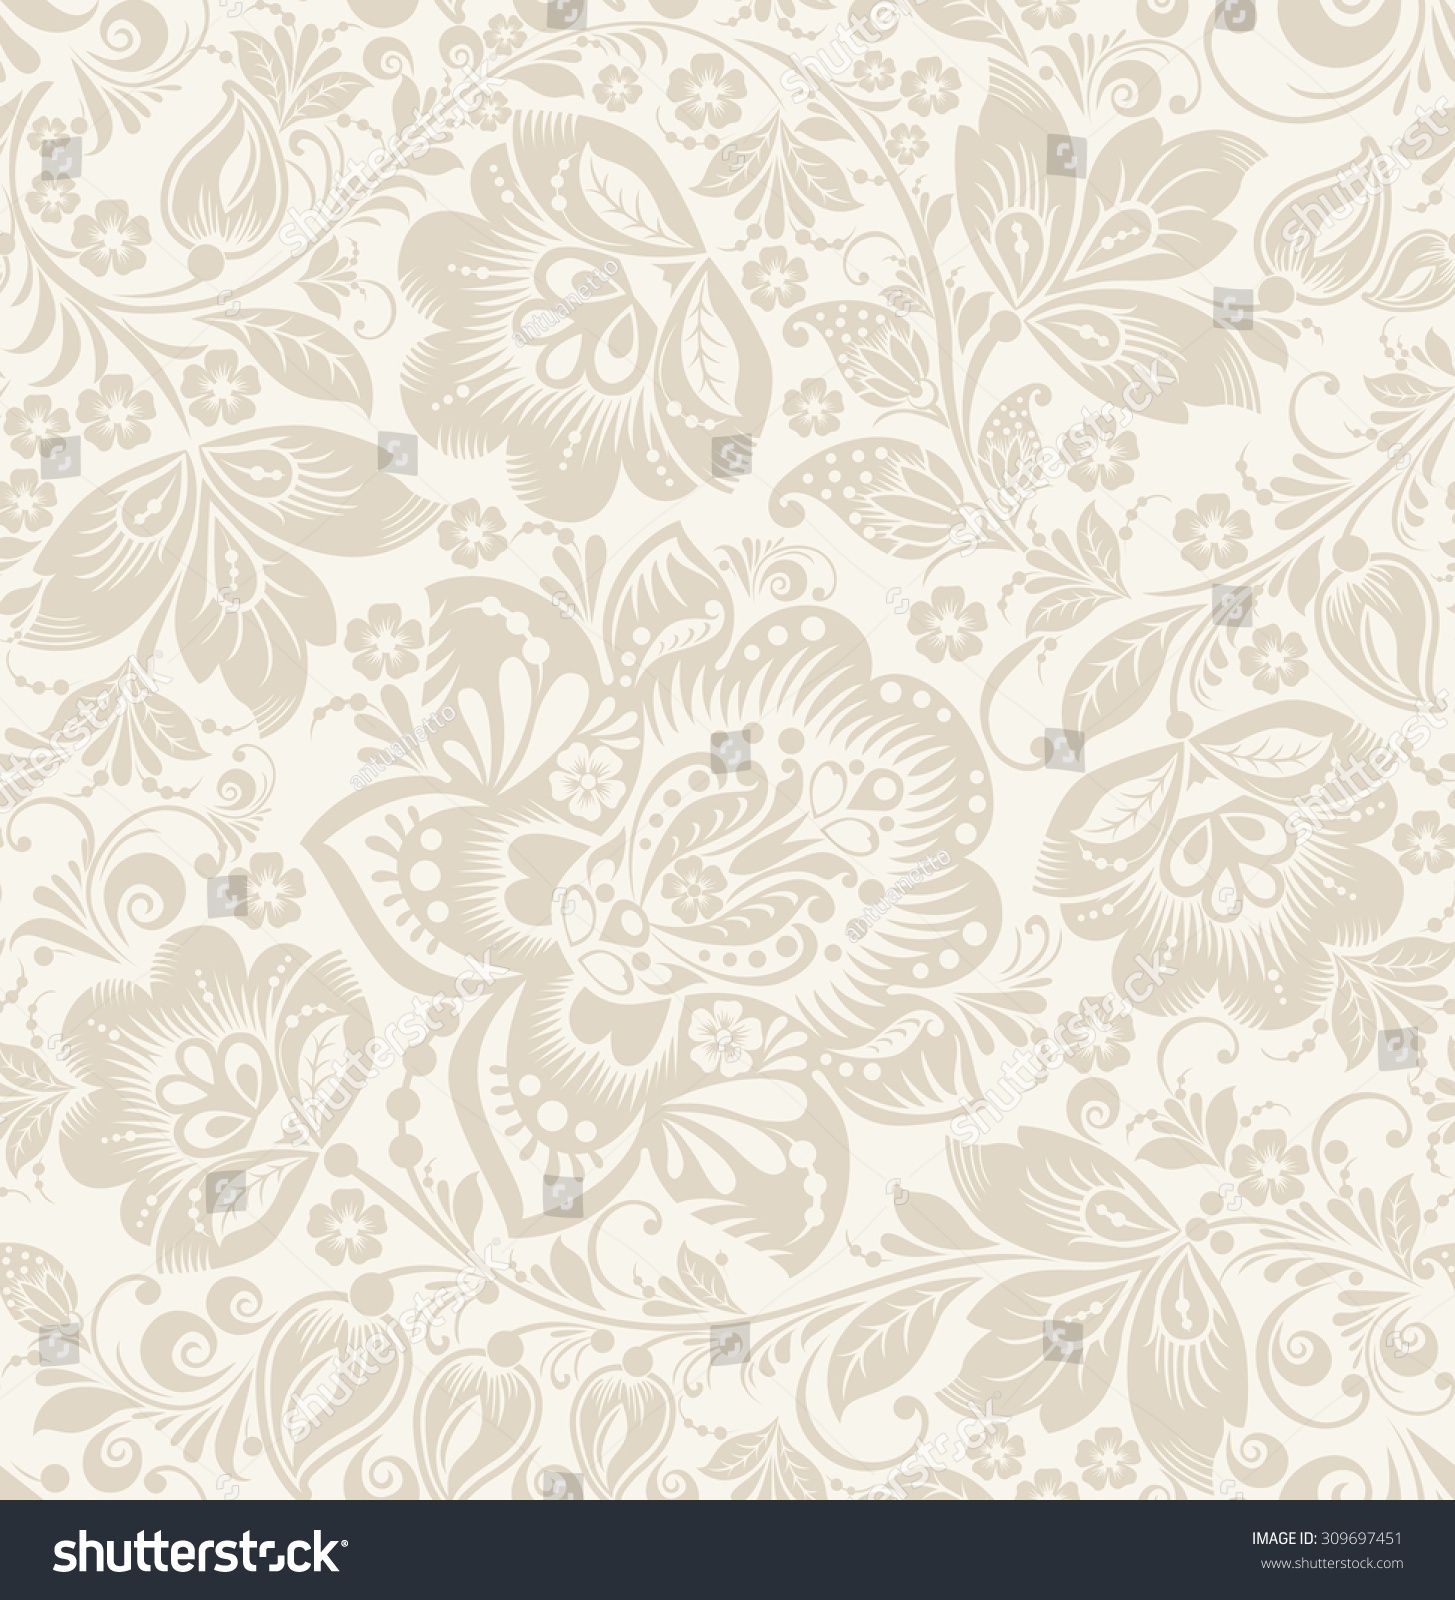 Vector Floral Vintage Rustic Seamless Pattern Background Can Be Used For Wallpaper Fills